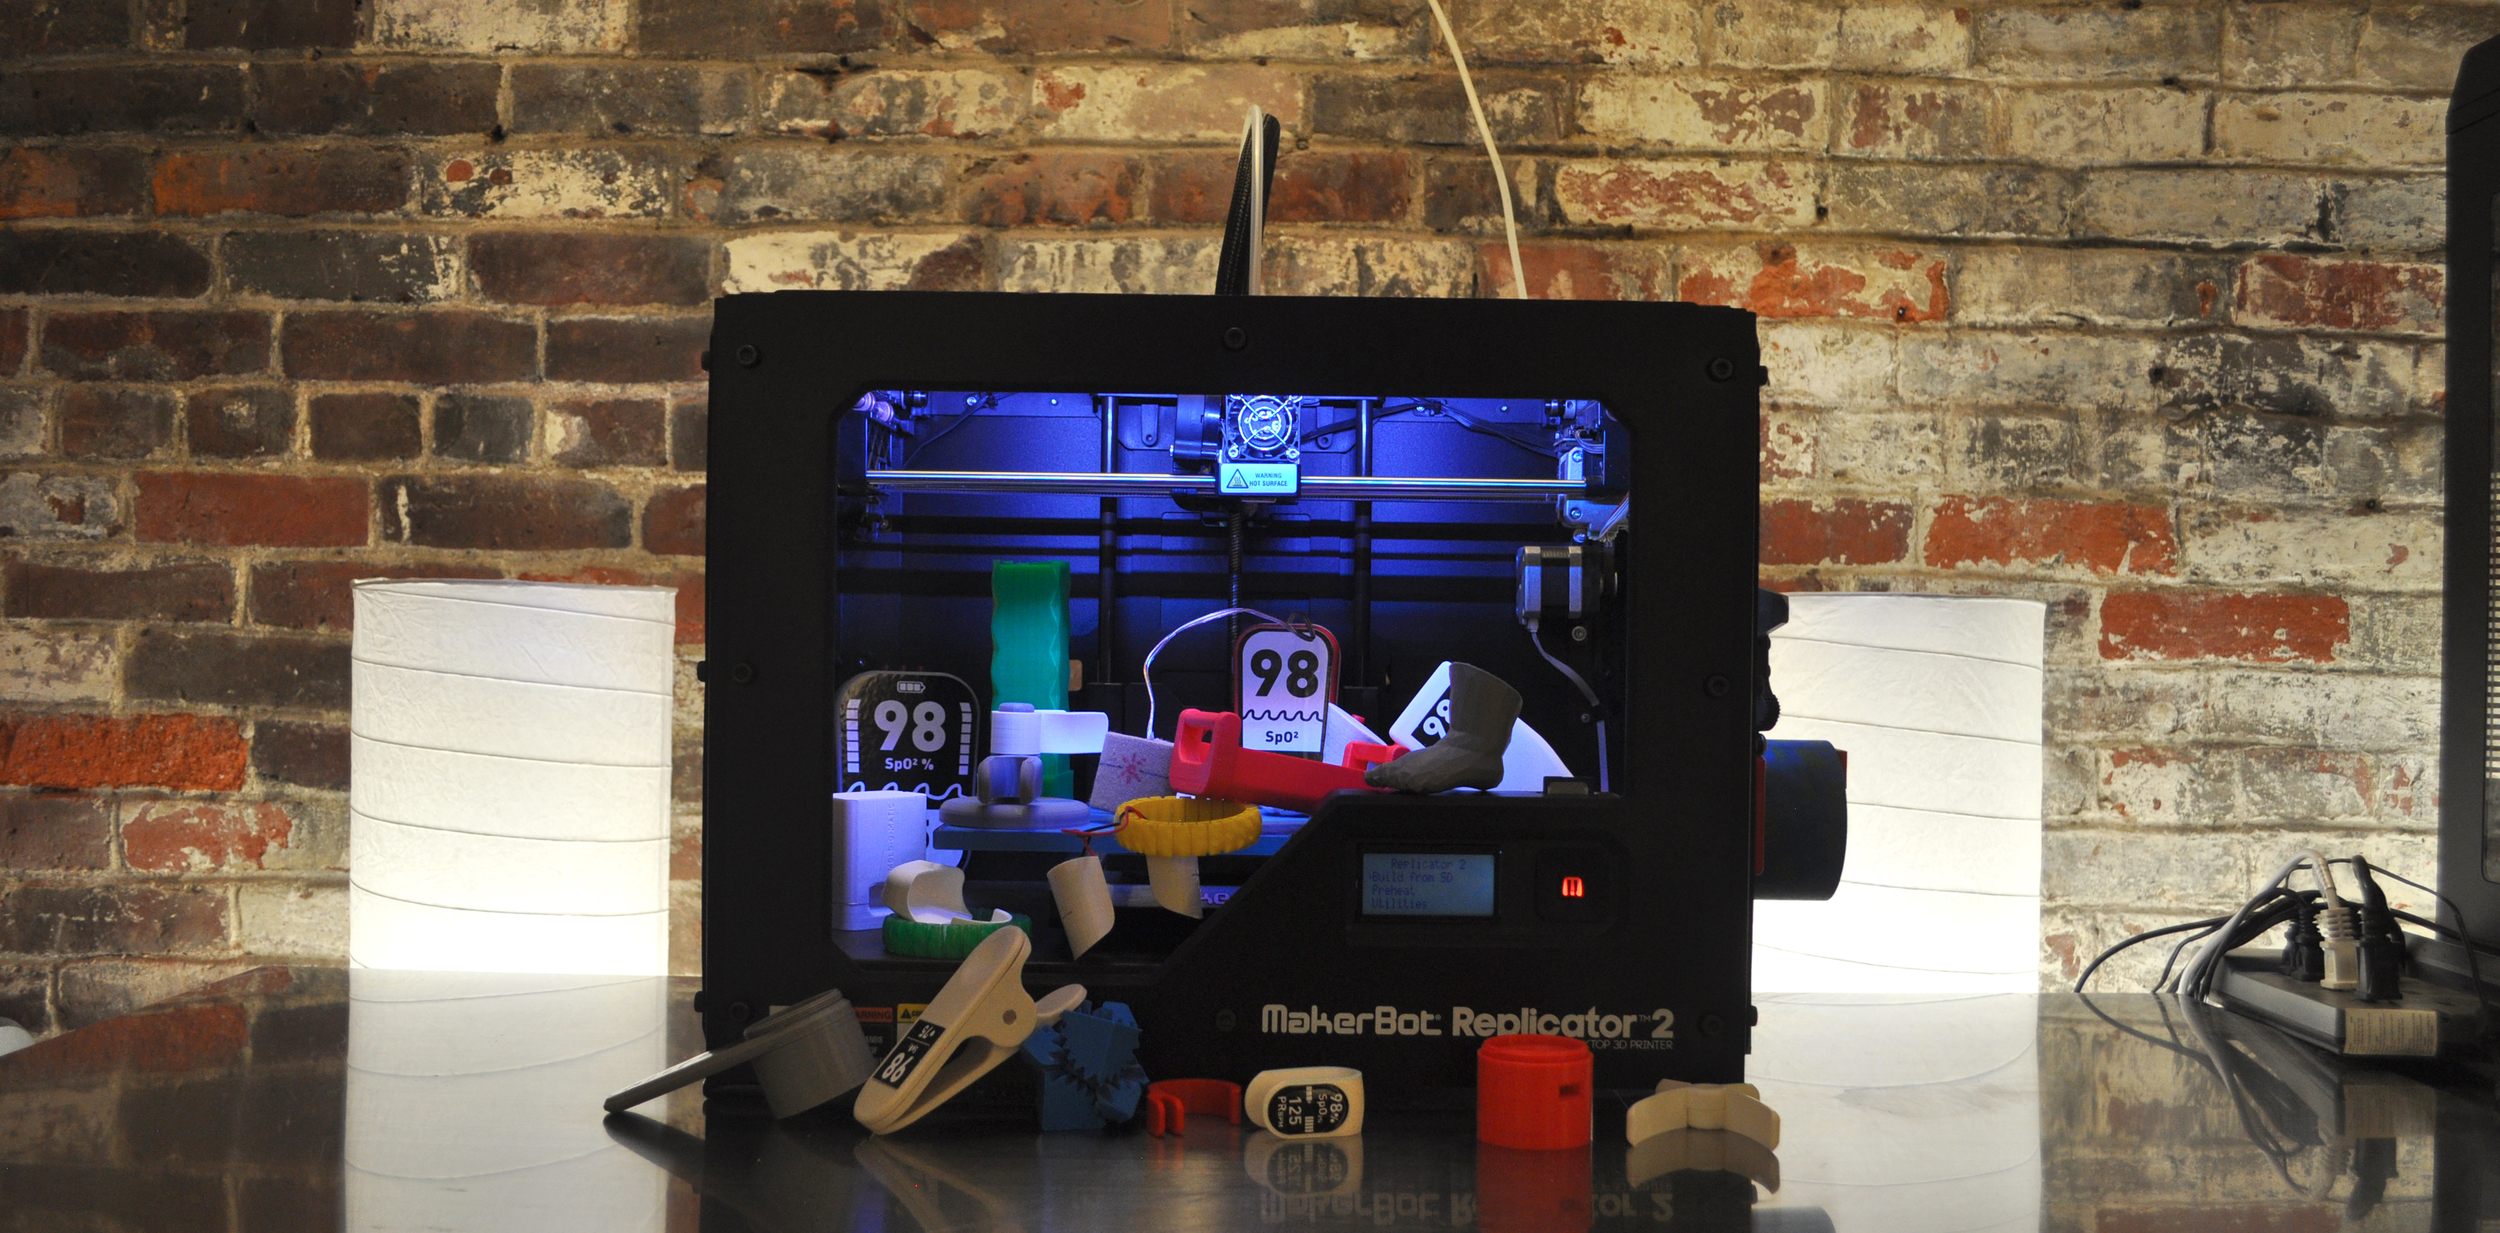 DtM's Makerbot 3D Printer and the pile of prototoypes we've created with it so far.